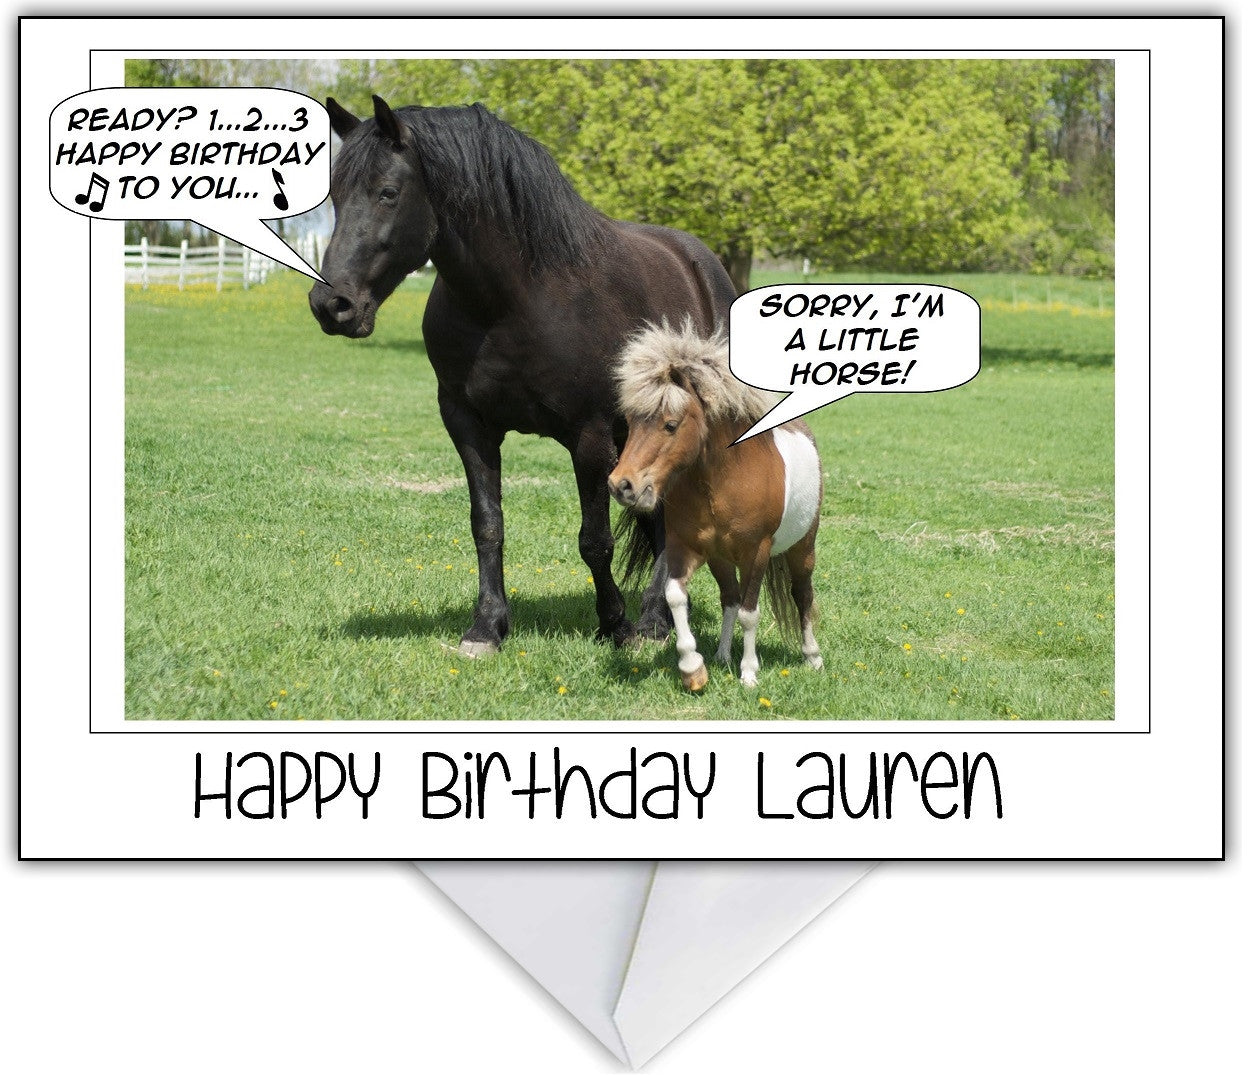 Birthday Cards With Horses On Them Card Design Template